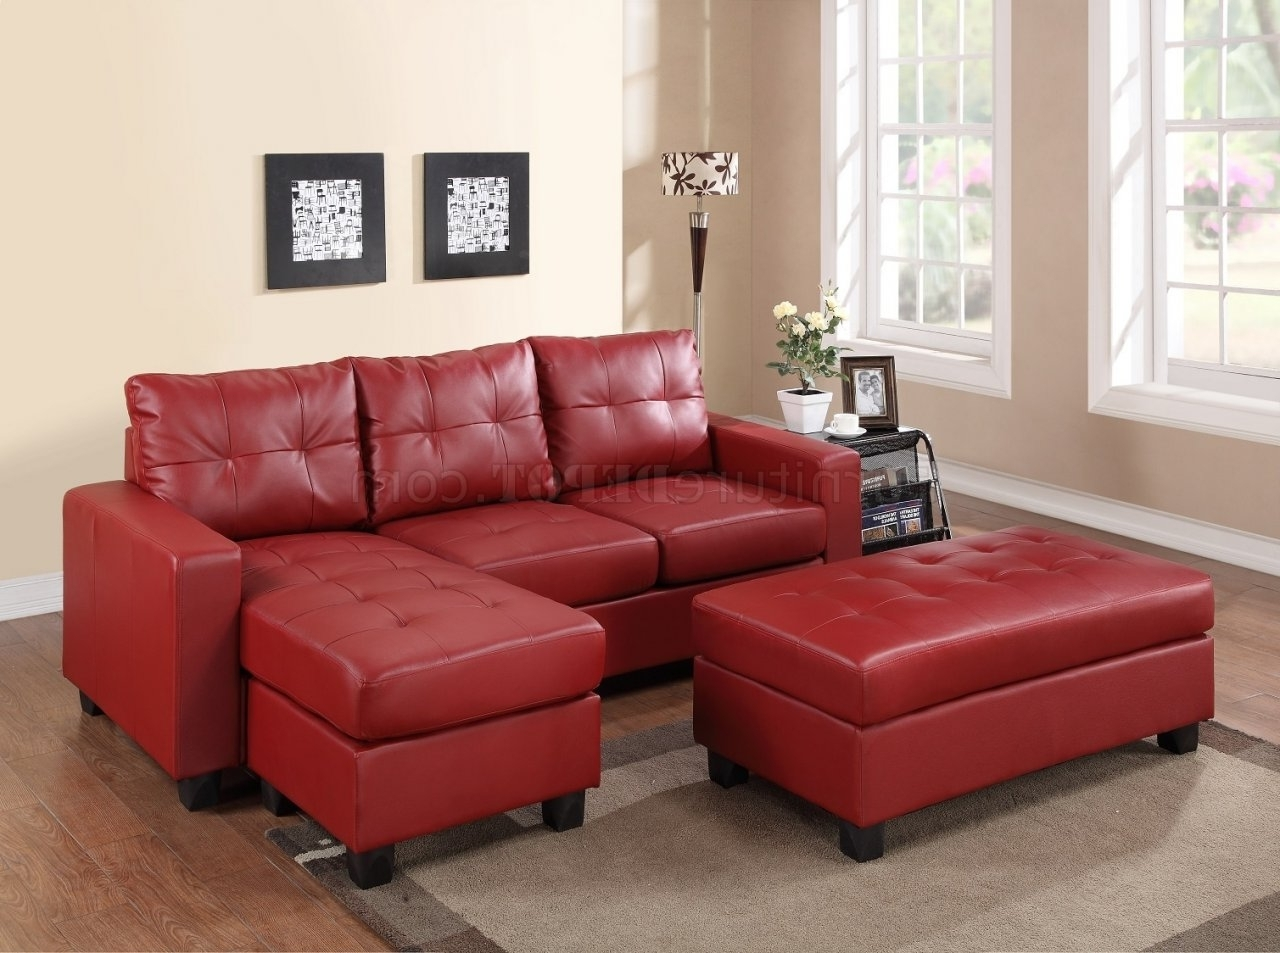 Red Sectional Sofas With Ottoman Inside Well Known 2511 Sectional Sofa Set In Red Bonded Leather Match Pu (View 14 of 20)